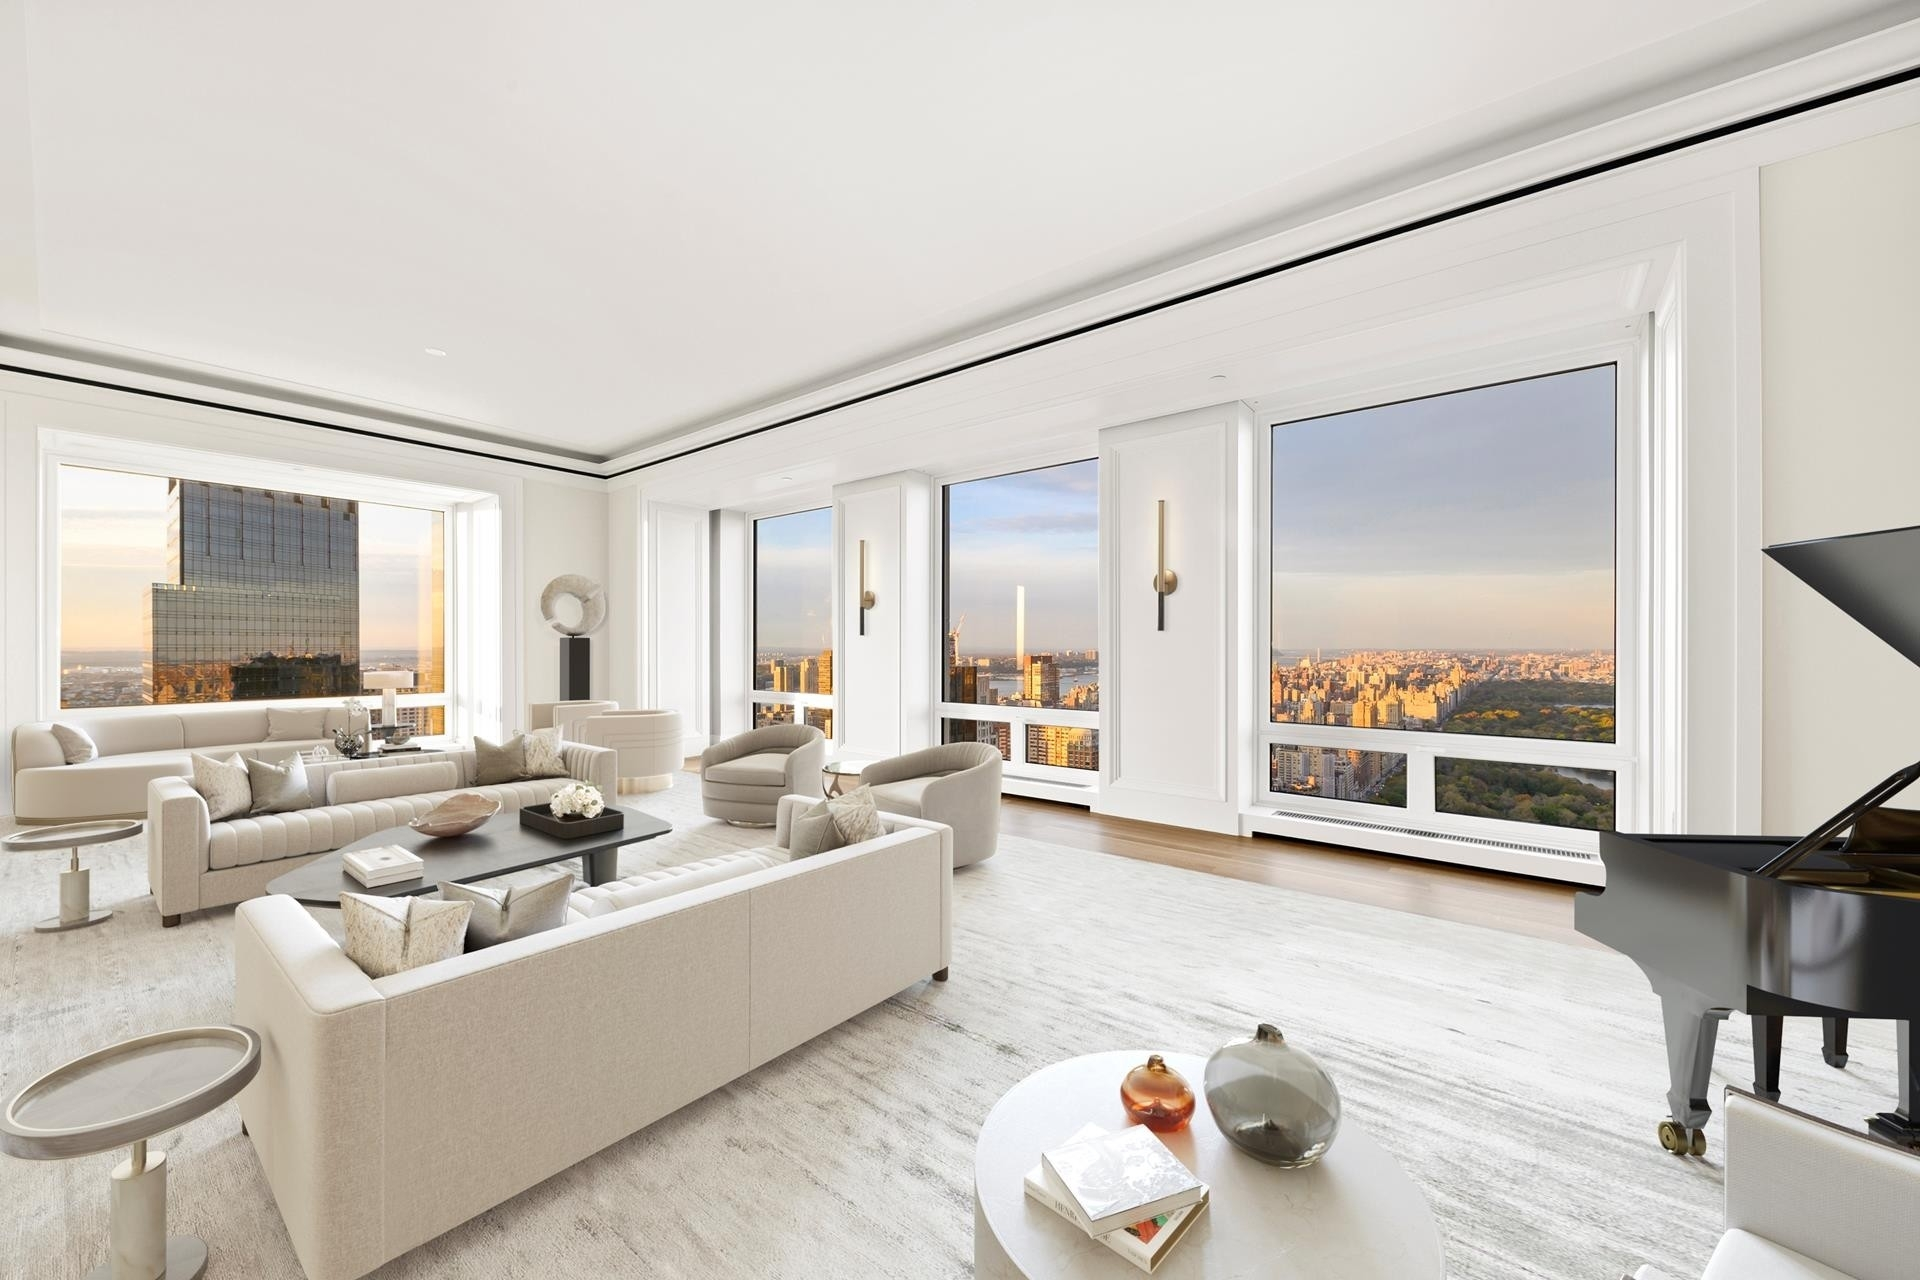 2. Condominiums for Sale at 220 CPS, 220 CENTRAL PARK S, 54/55A Central Park South, New York, NY 10019